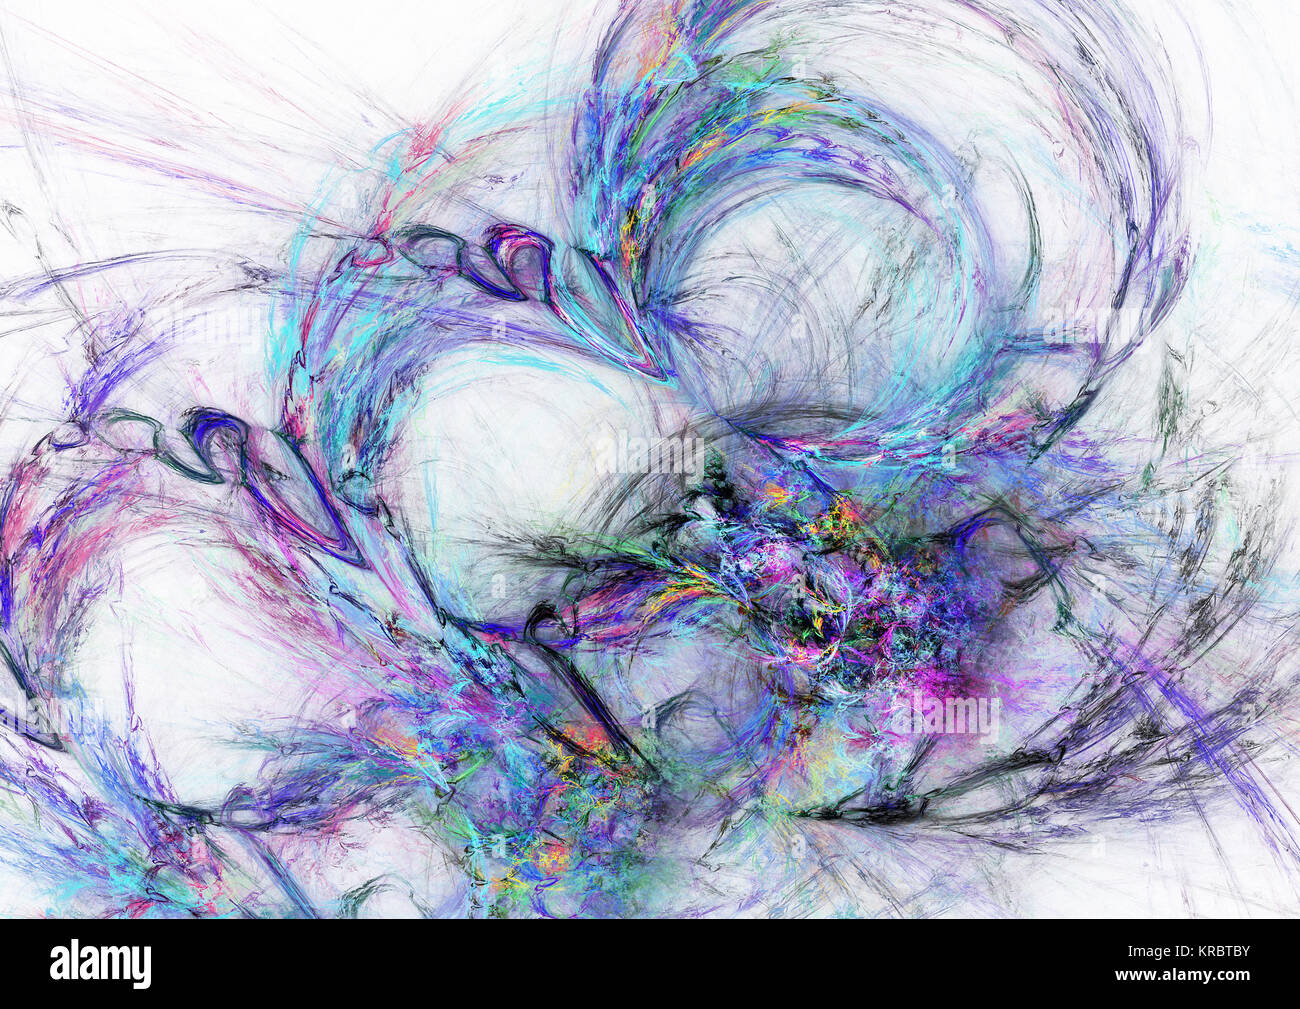 Fractal flame, computer generated image - Stock Image